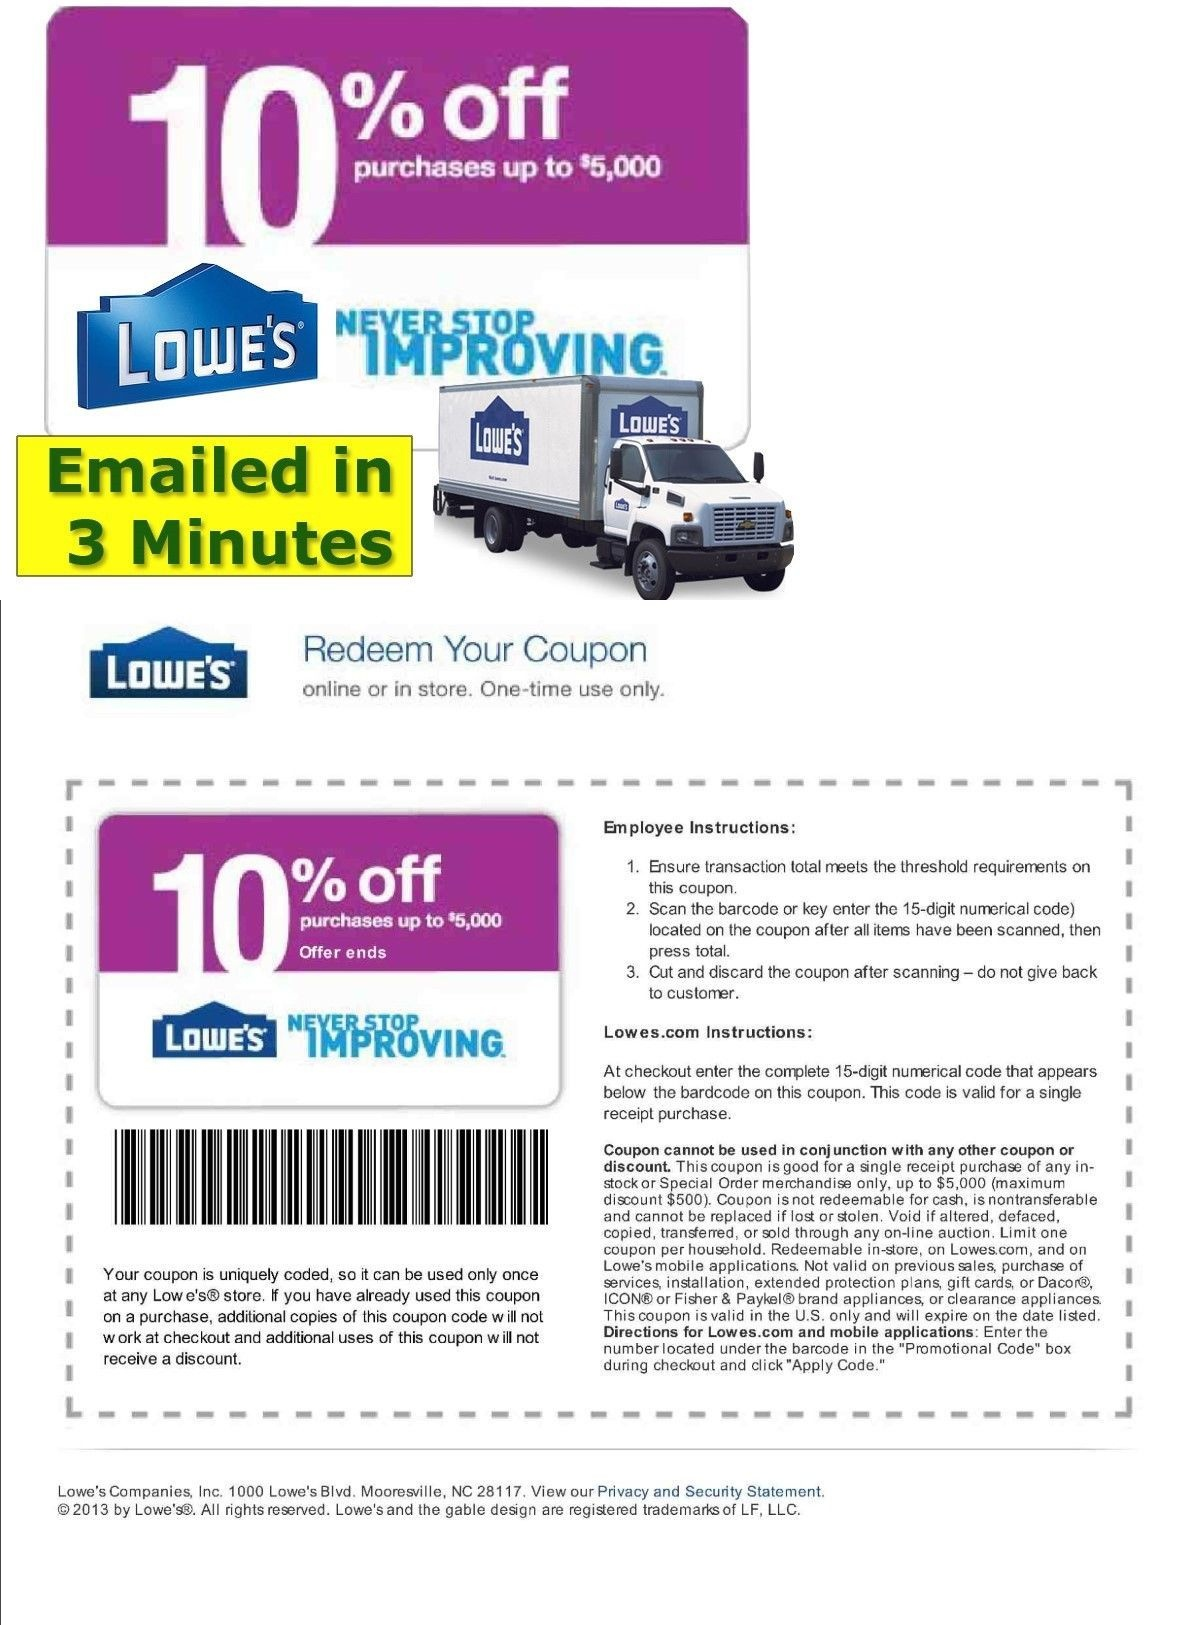 Coupons: (5X) Five Lowes 10% Off Printable-Coupon Fast Email Exp 4 - Free Printable Similac Coupons Online